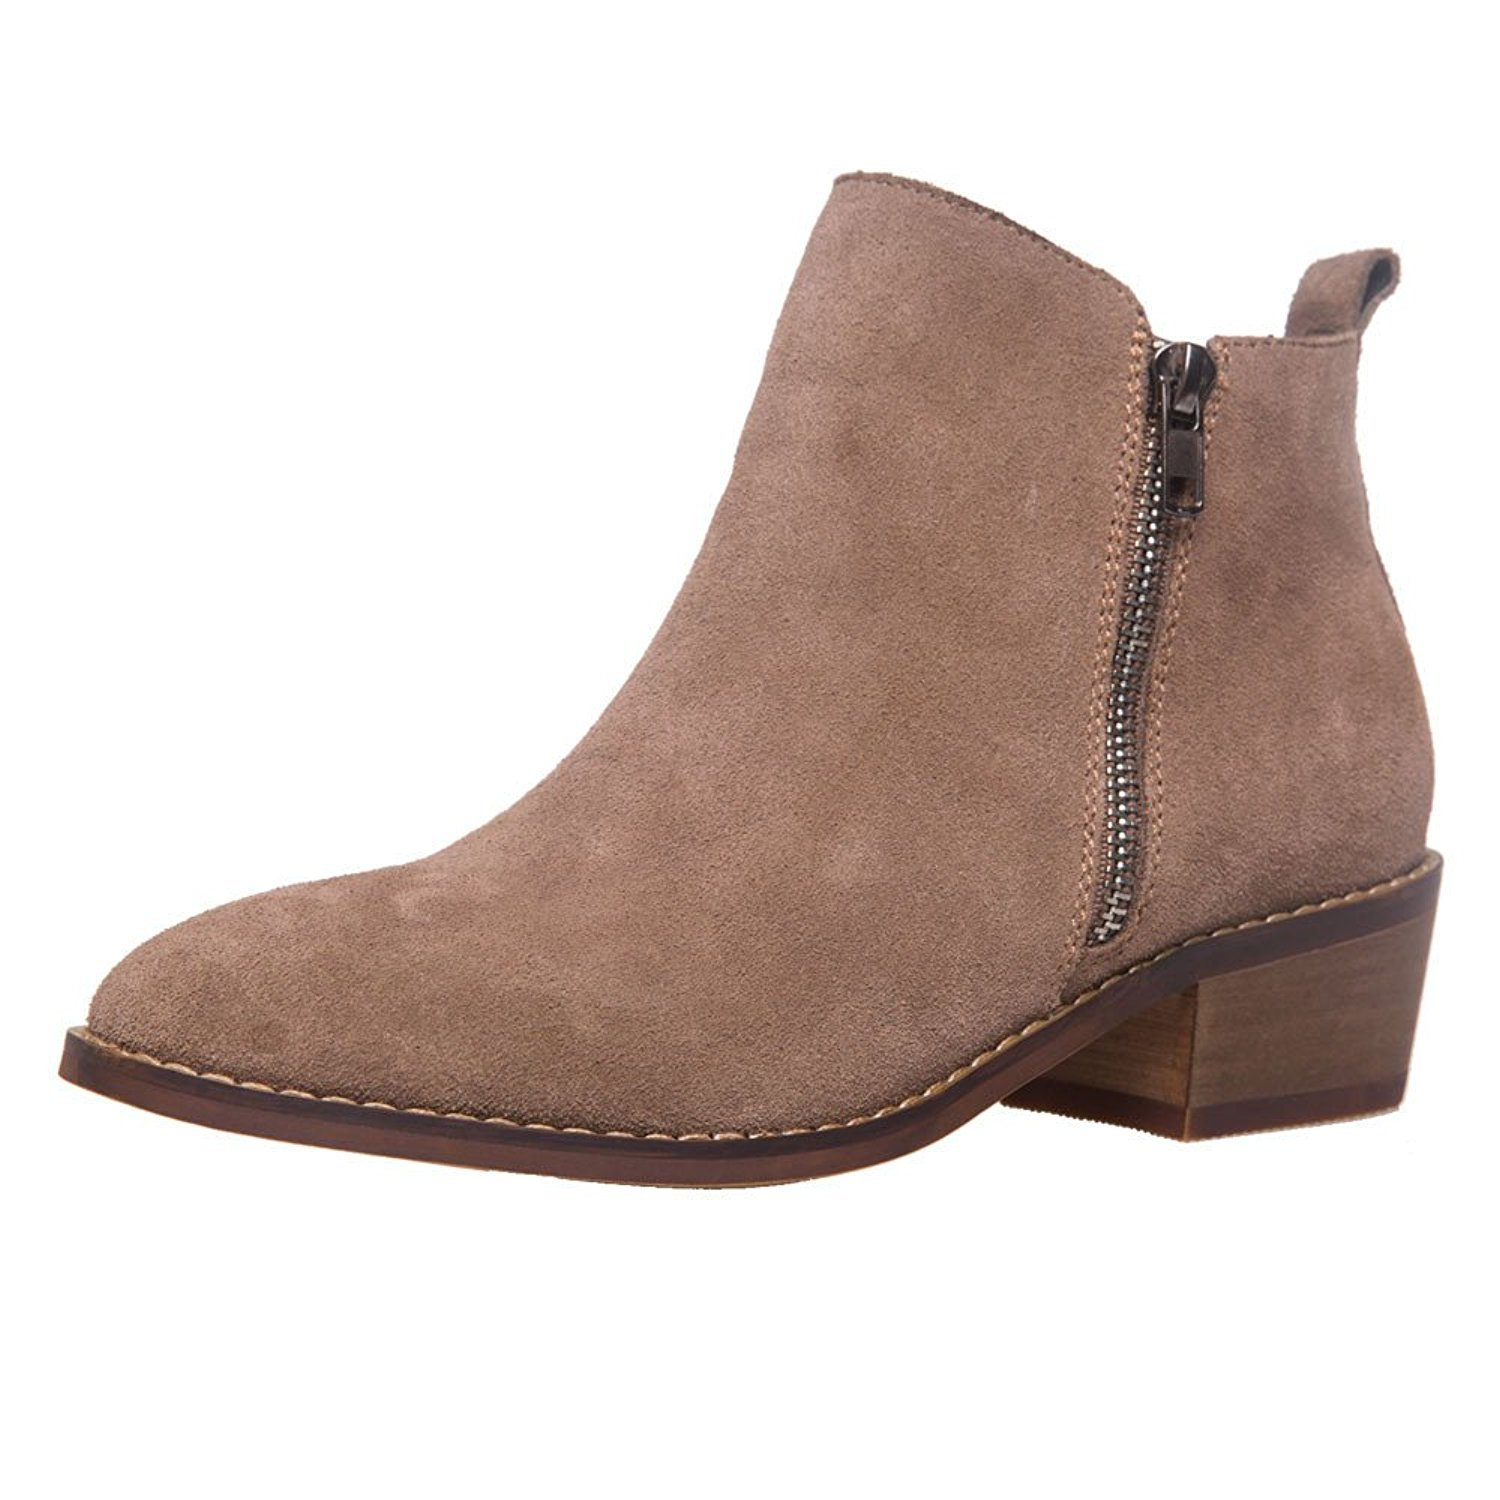 31e405fb8ffad Amazon.com | SheSole Women's Suede Ankle Boots Low Heels Short Camel  Booties US 6 | Ankle & Bootie